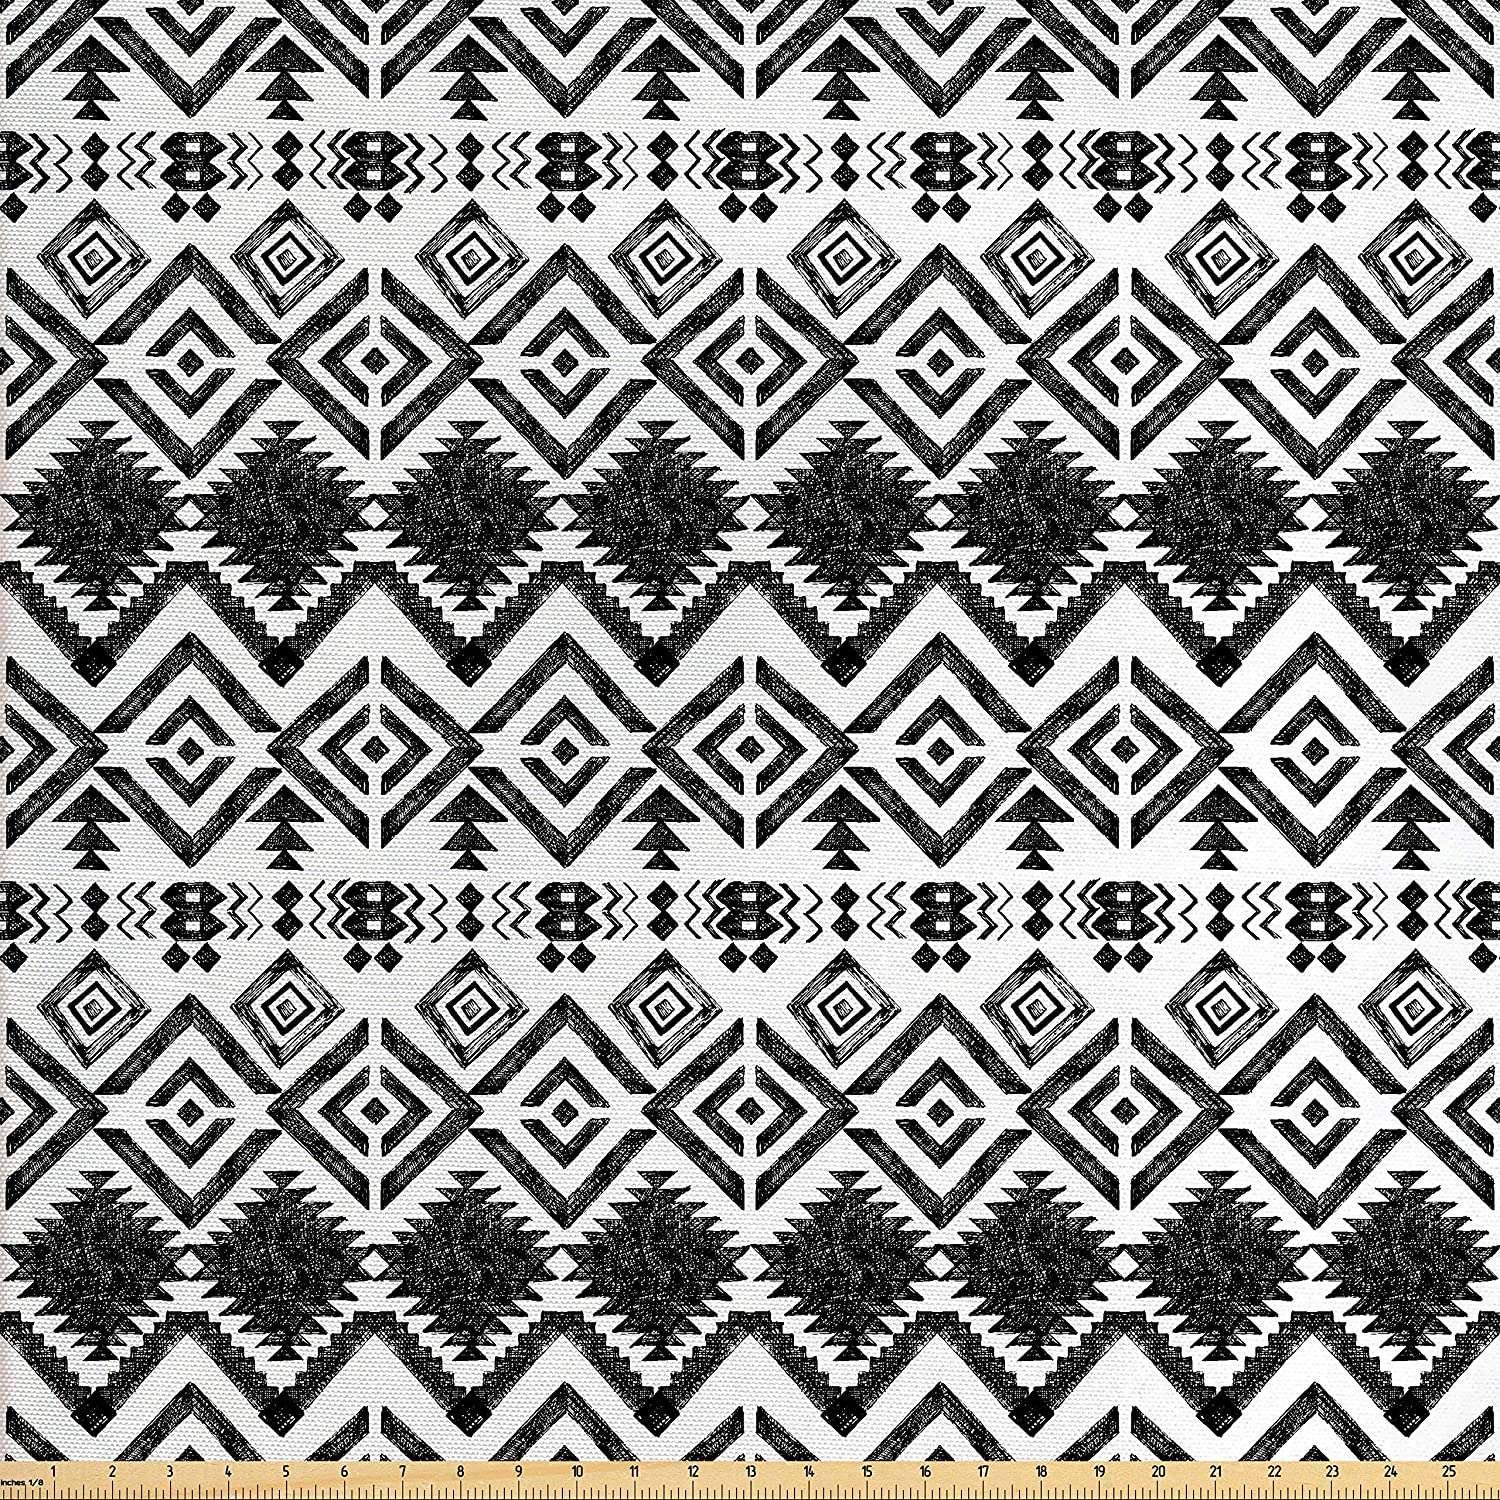 Ambesonne Tribal Fabric by The Yard, Hand Drawn Style Tribal Pattern Geometric and Oranmental Aztec Design Print, Decorative Fabric for Upholstery and Home Accents, Black and White